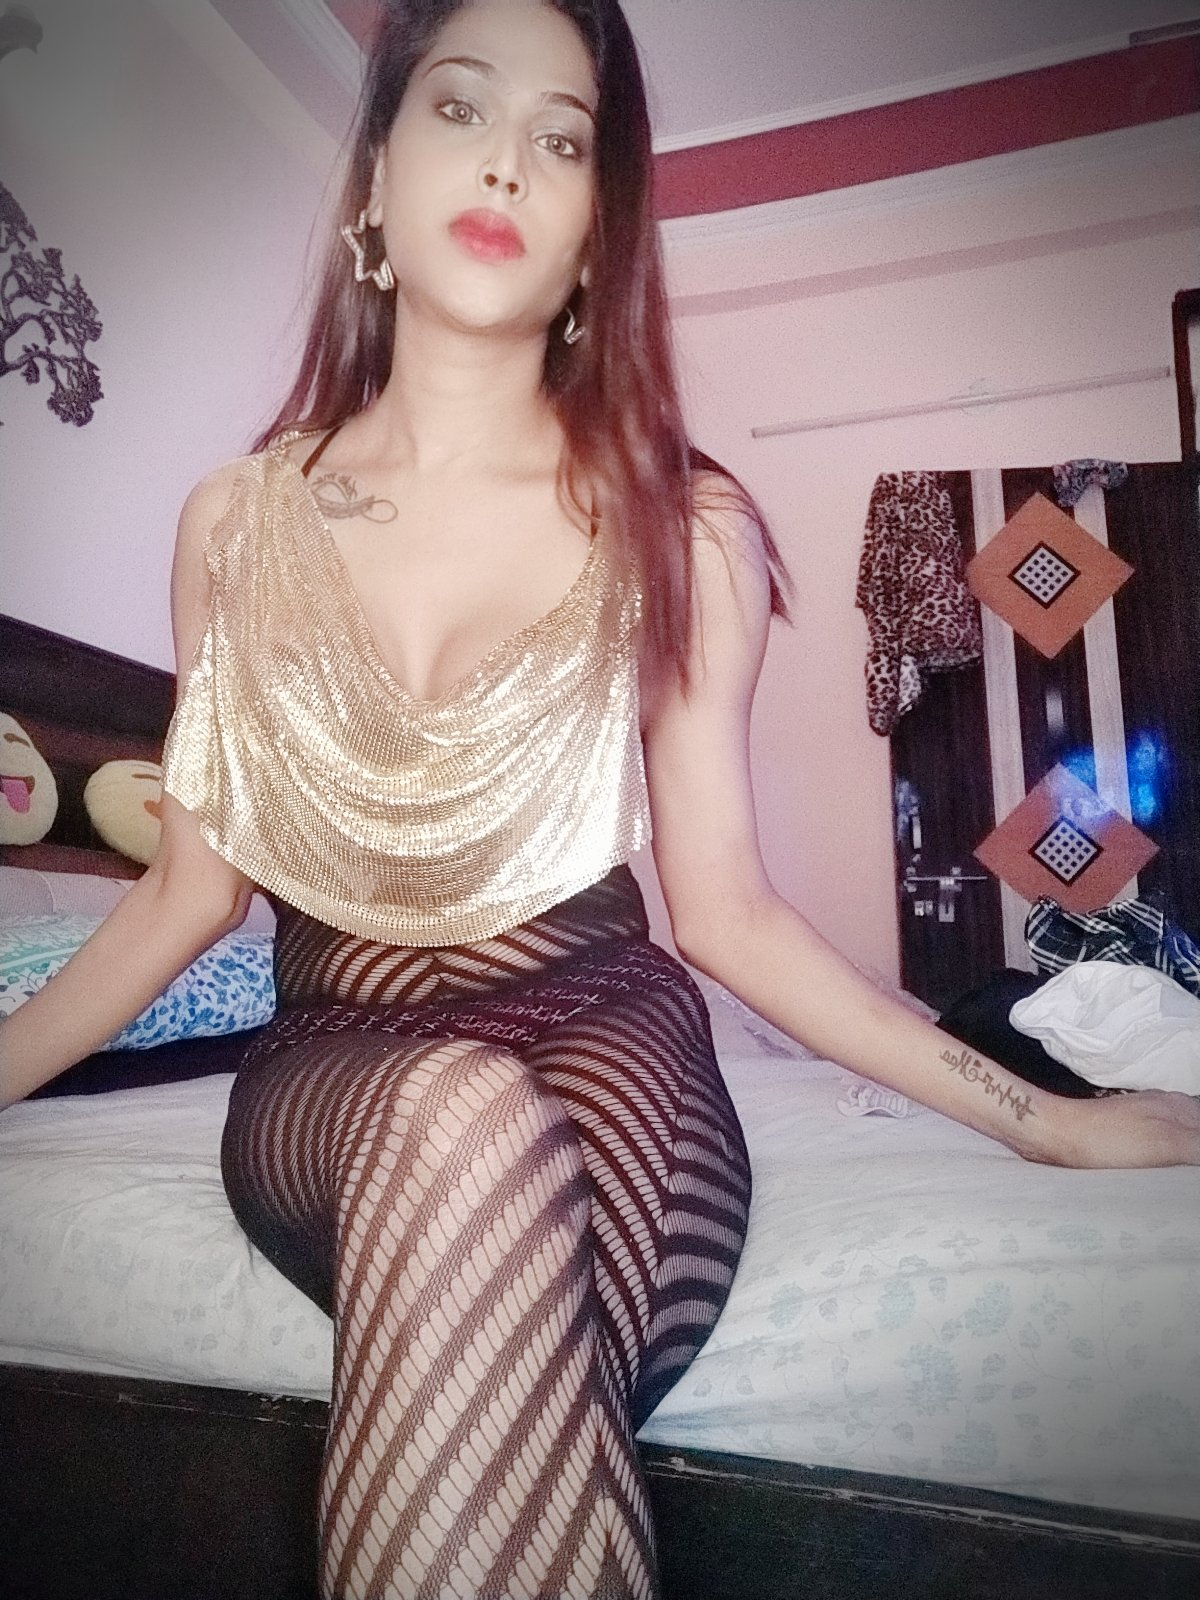 Welcome to the Sexual and Sexiest Escorts Agency